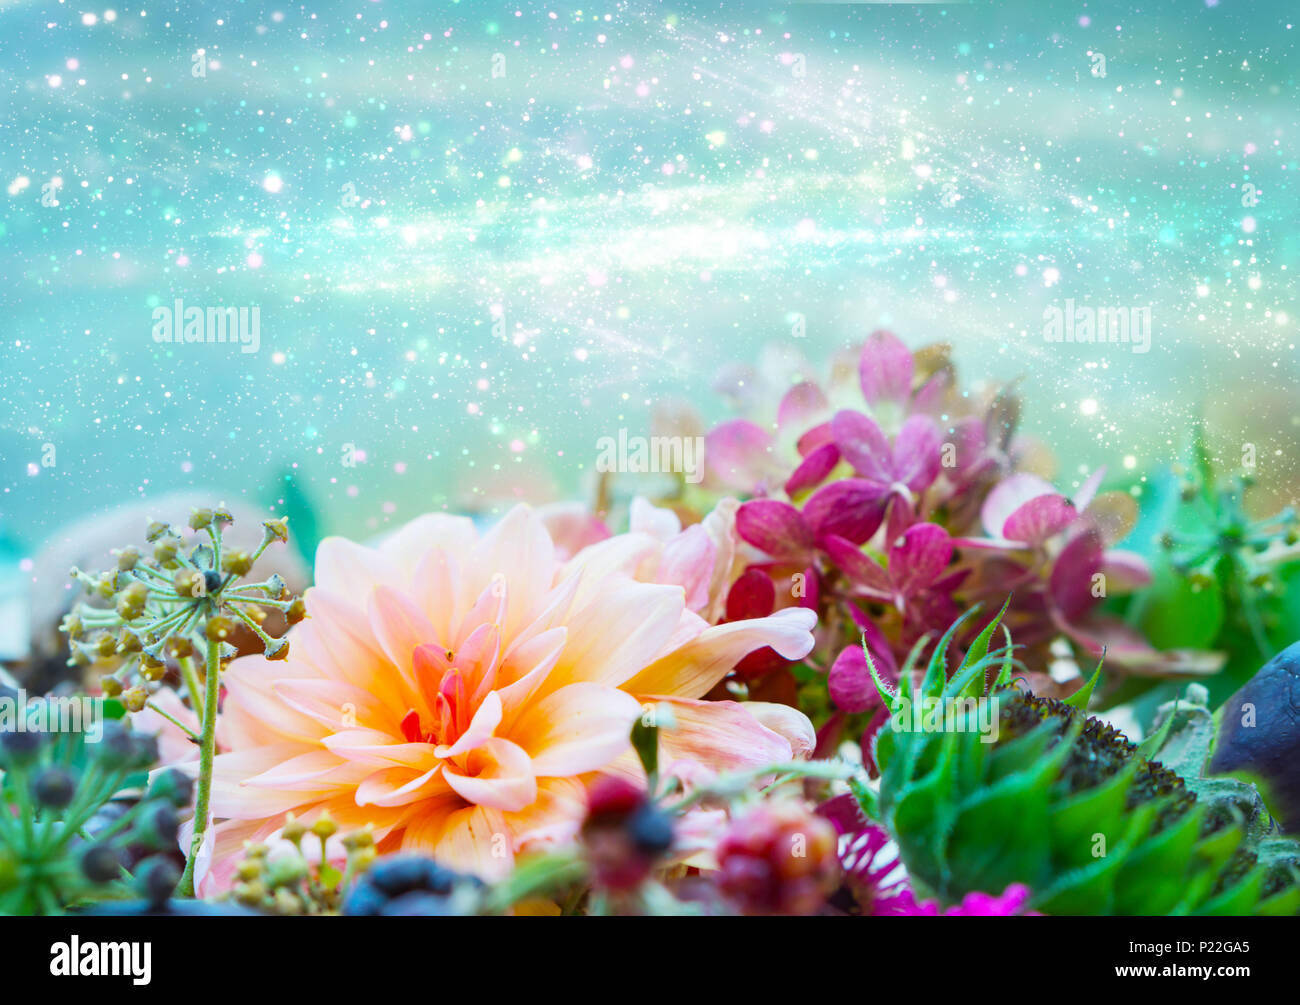 Greetings card, flower decoration with dahlia and hydrangea, Bokeh background - Stock Image